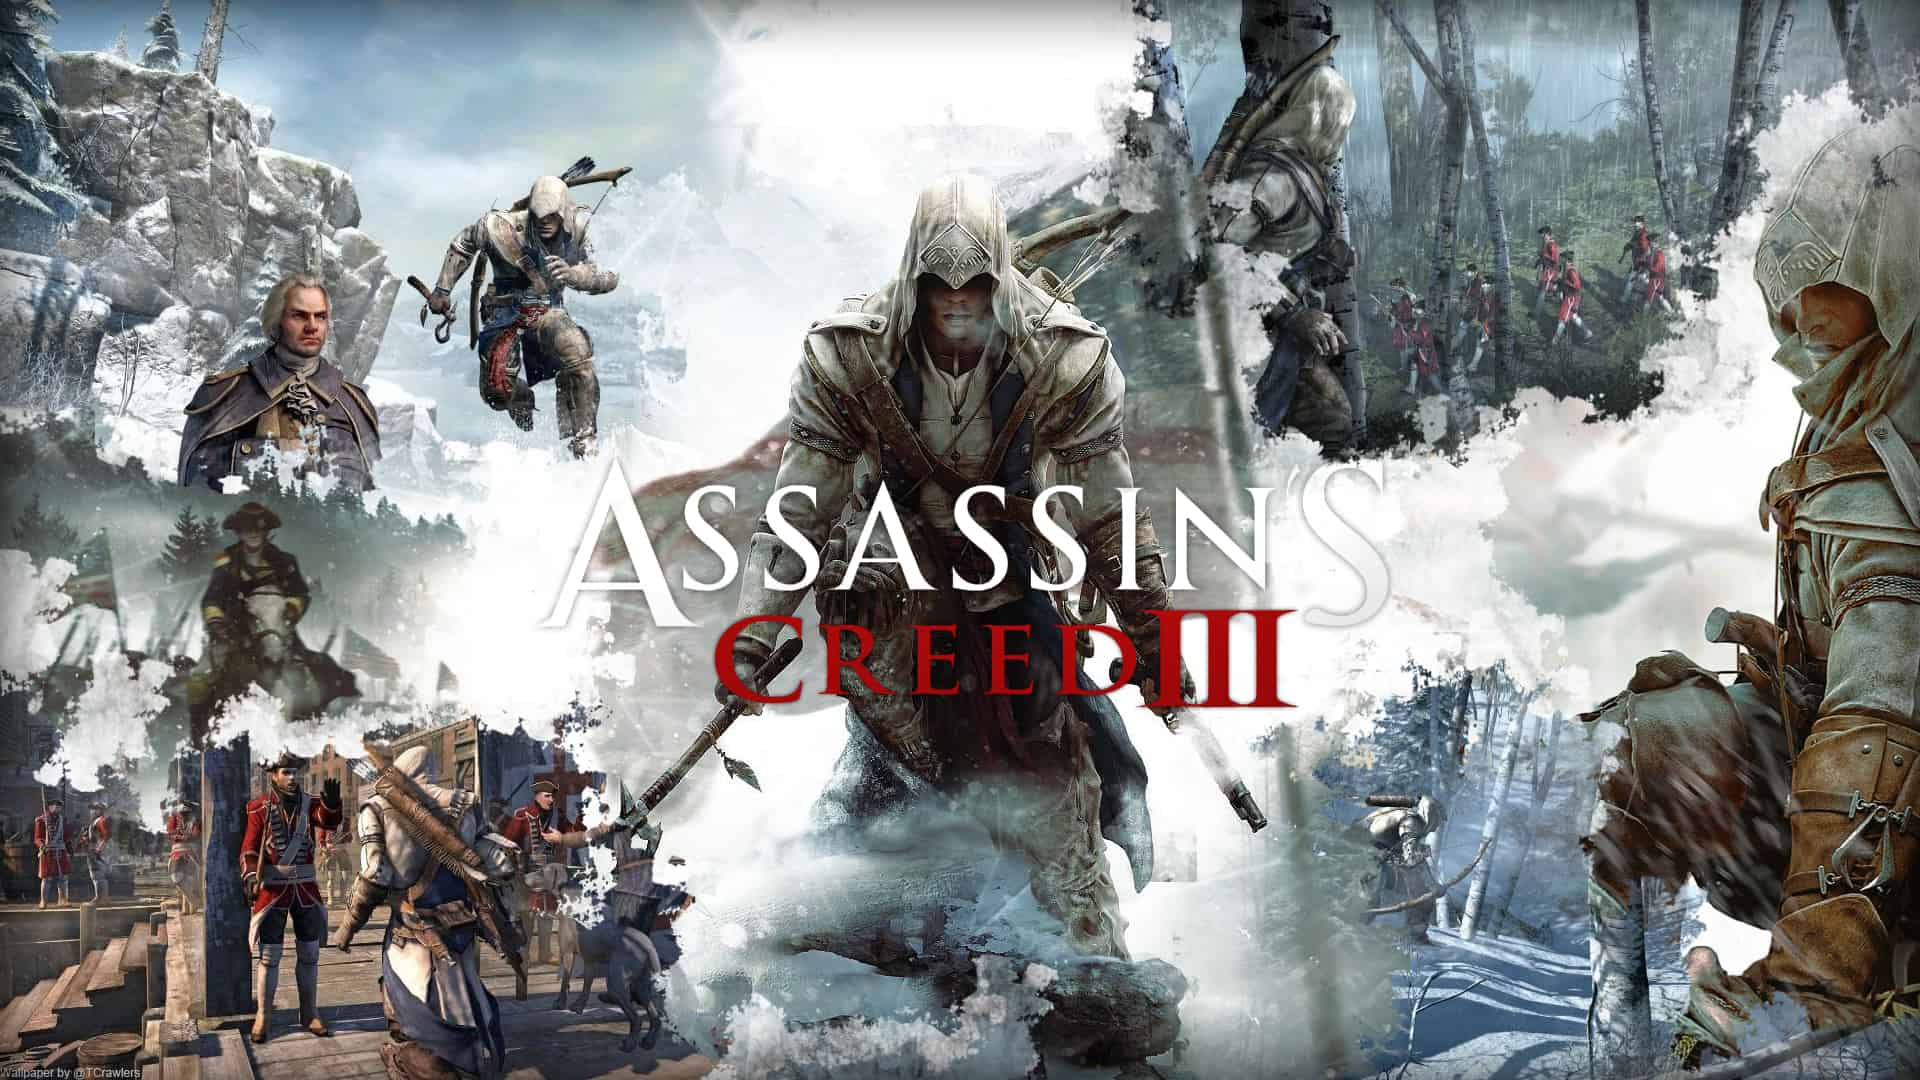 Where are Assassins Creed saved